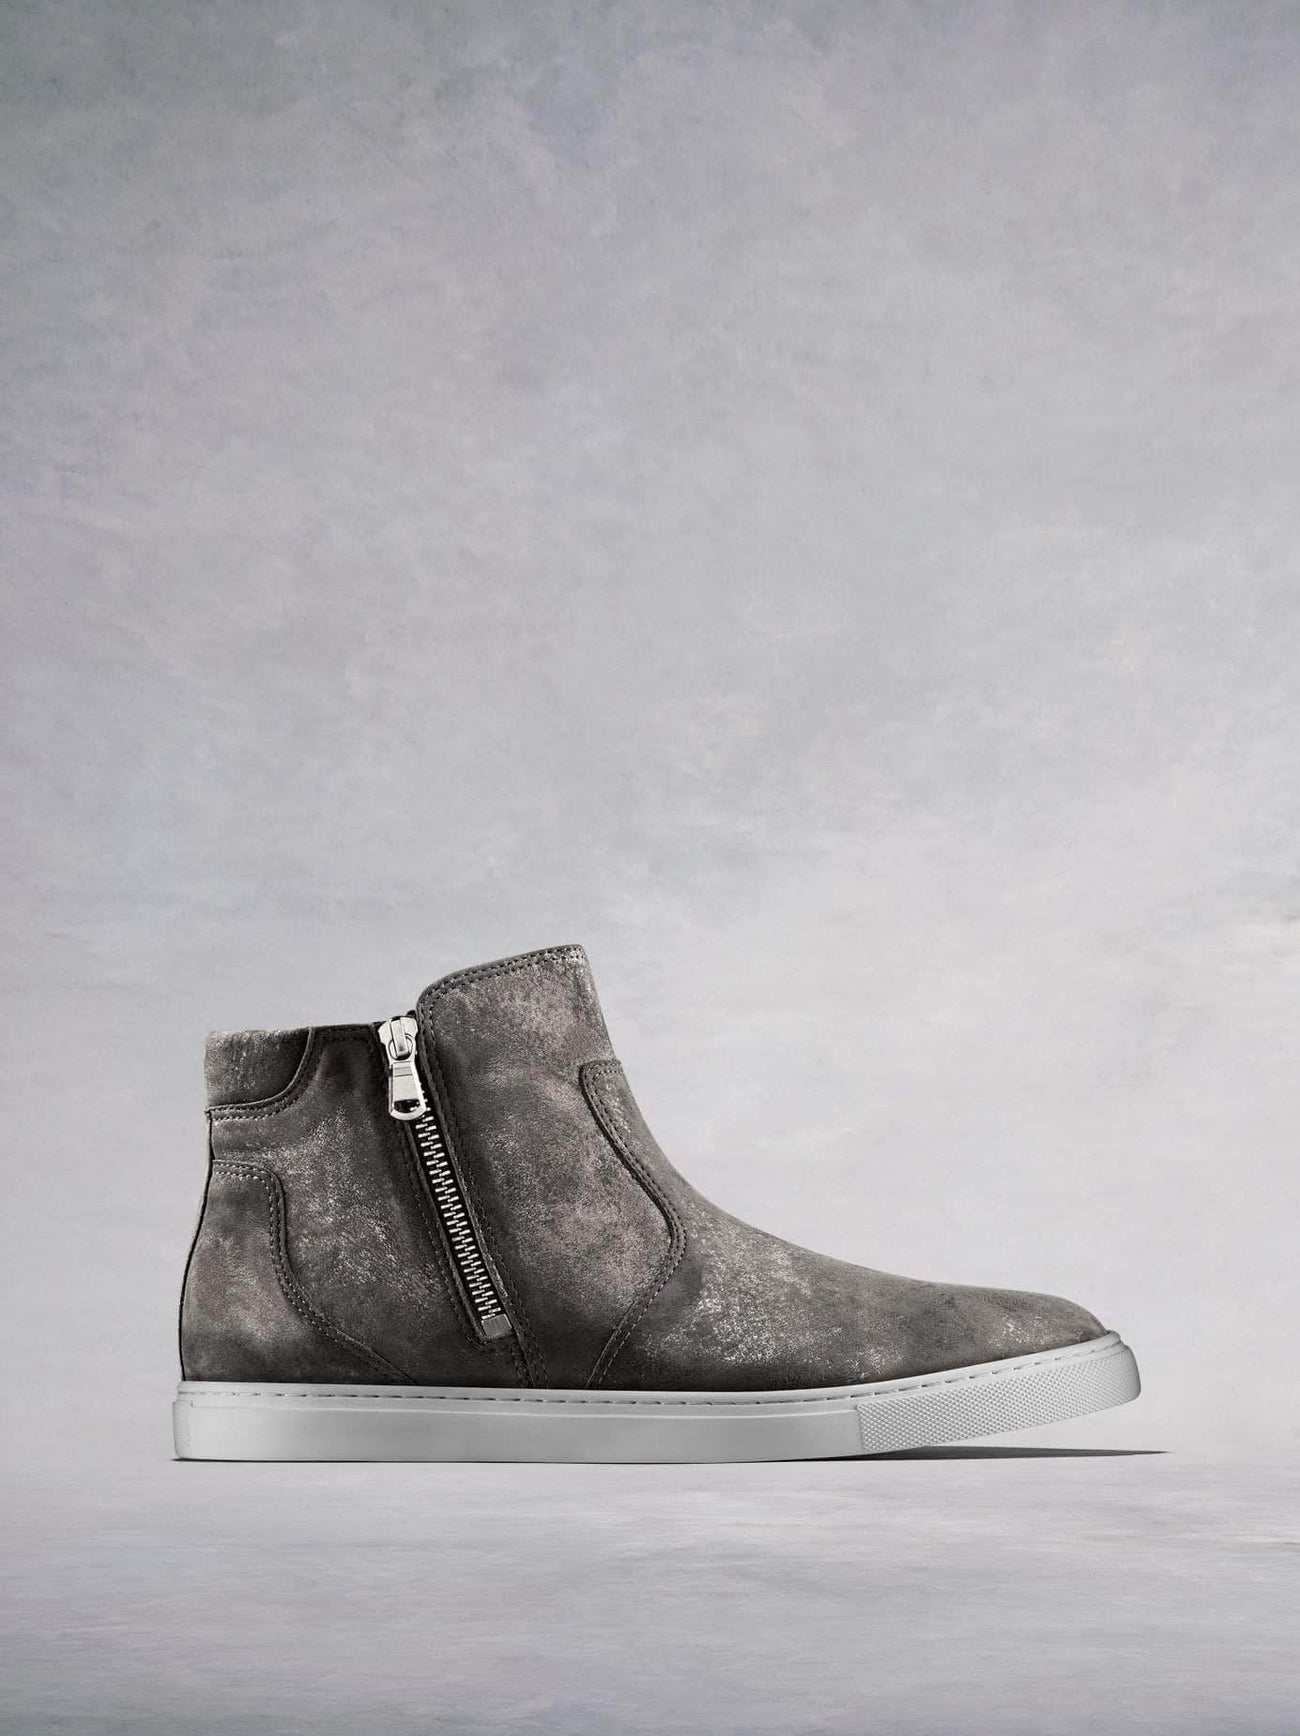 Parsonage, a stylish hi-top trainer in pewter metallic leather.